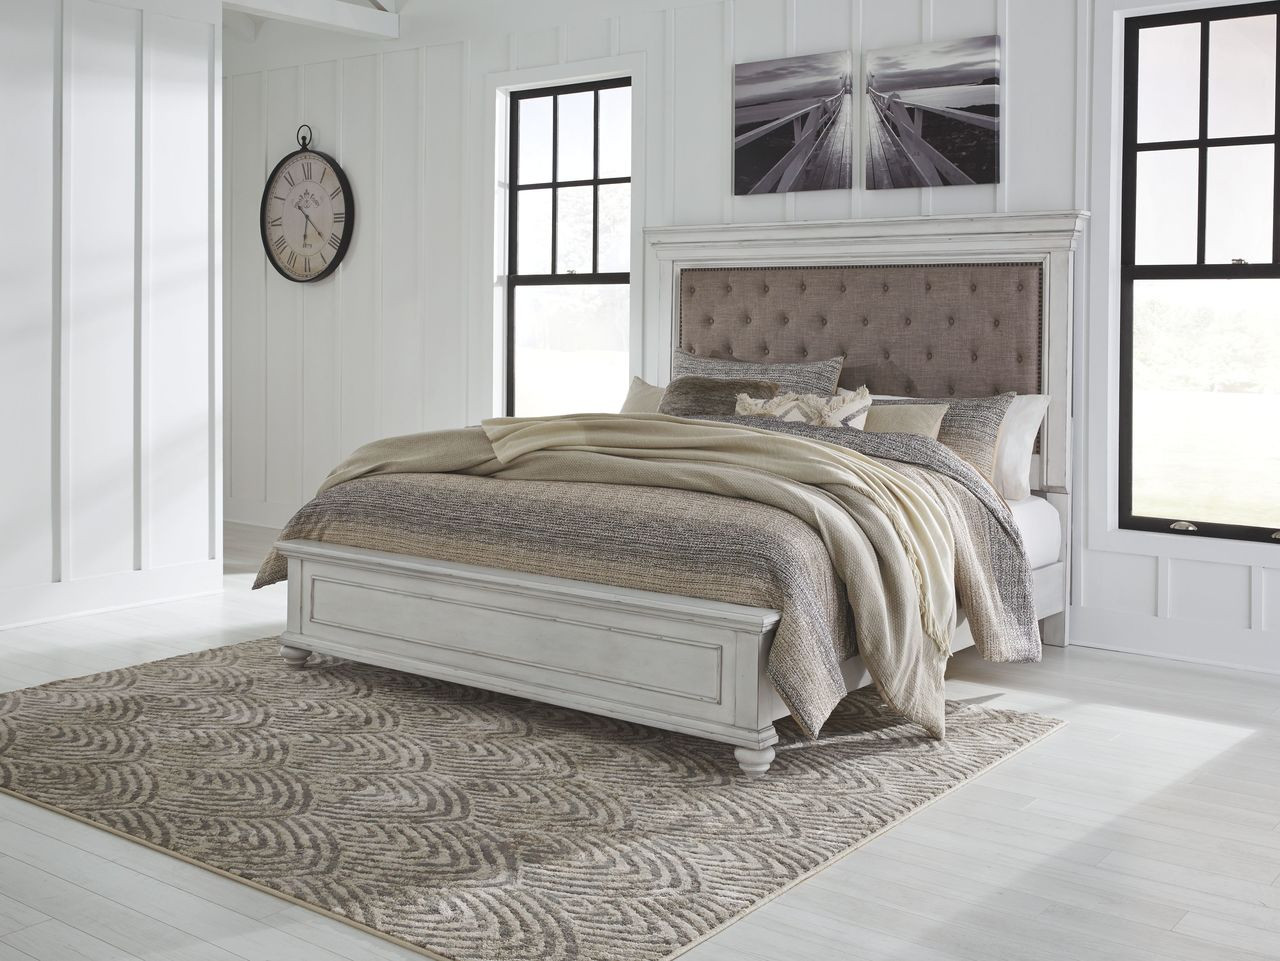 The Kanwyn Whitewash Queen Panel Upholstered Bed Available At Hometown Furnishings Retail Rent To Own Serving Brockton And Taunton Ma